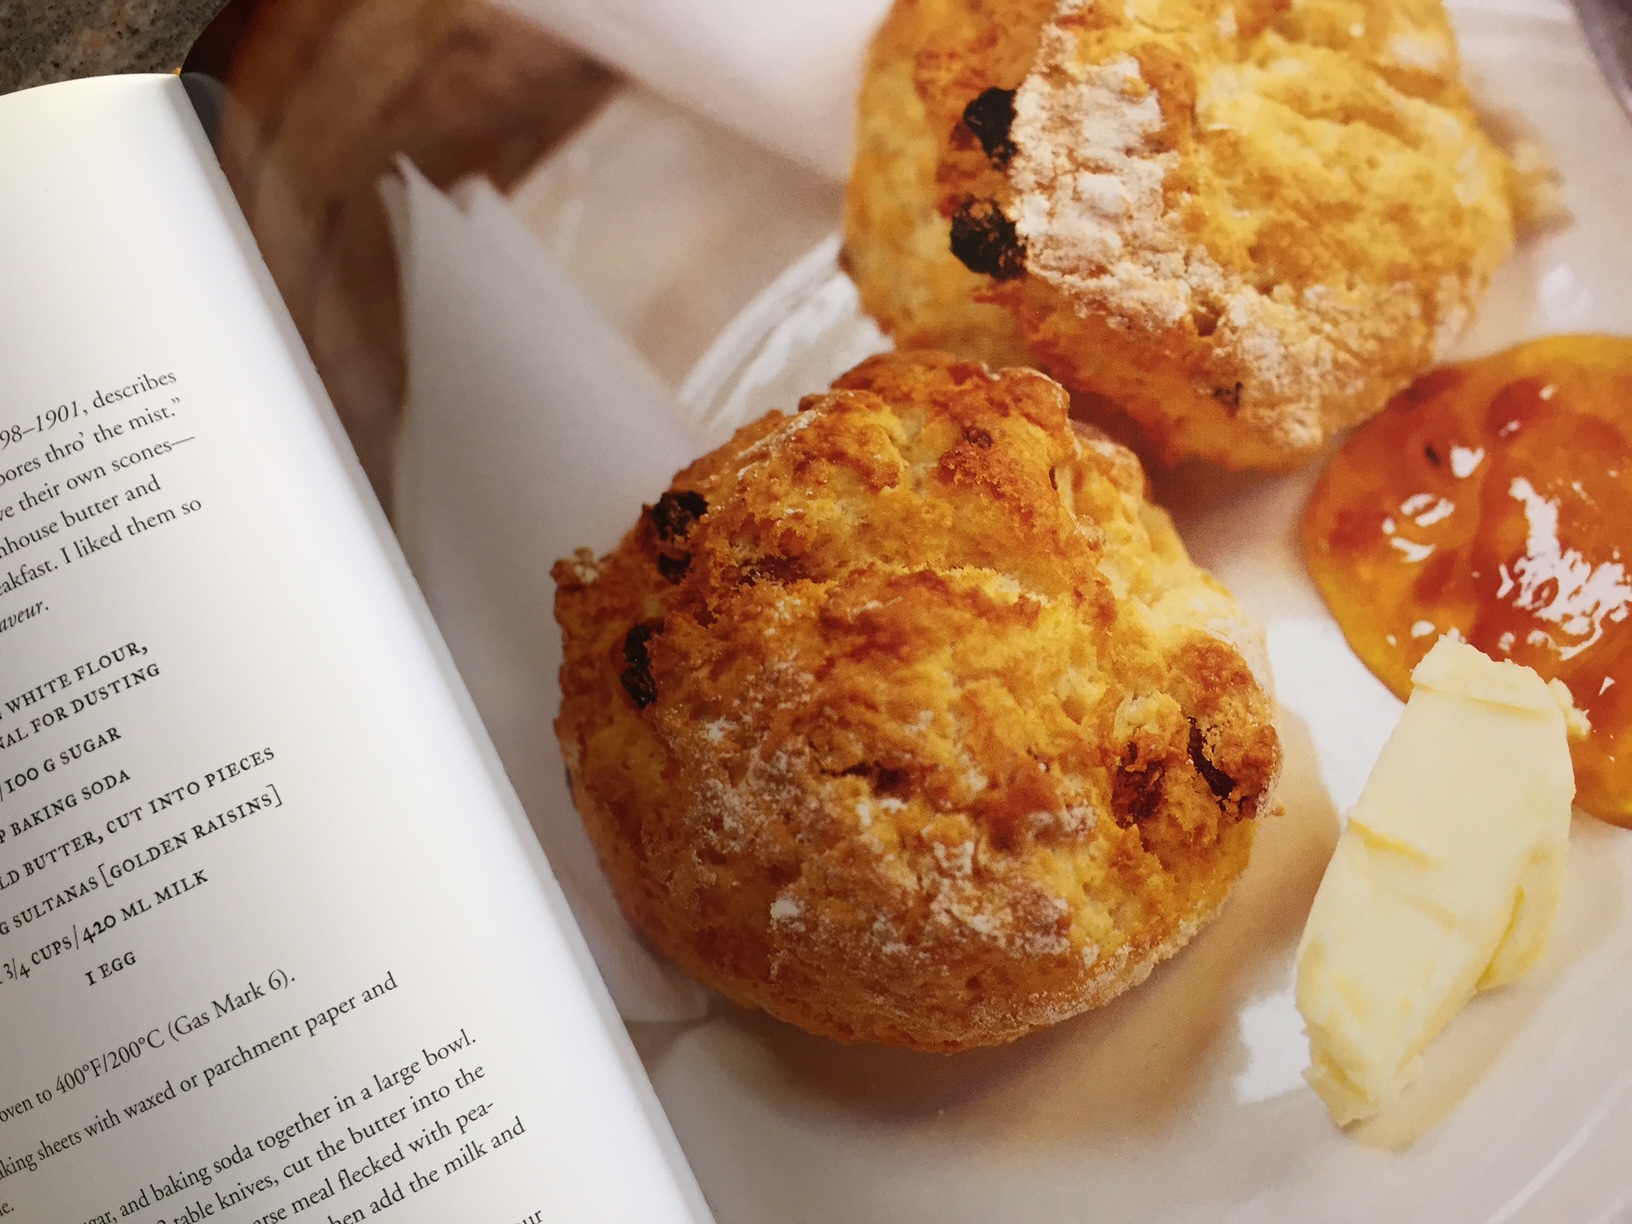 Serve Warm With Butter, Marmalade, Or Preserves.   Enjoy!